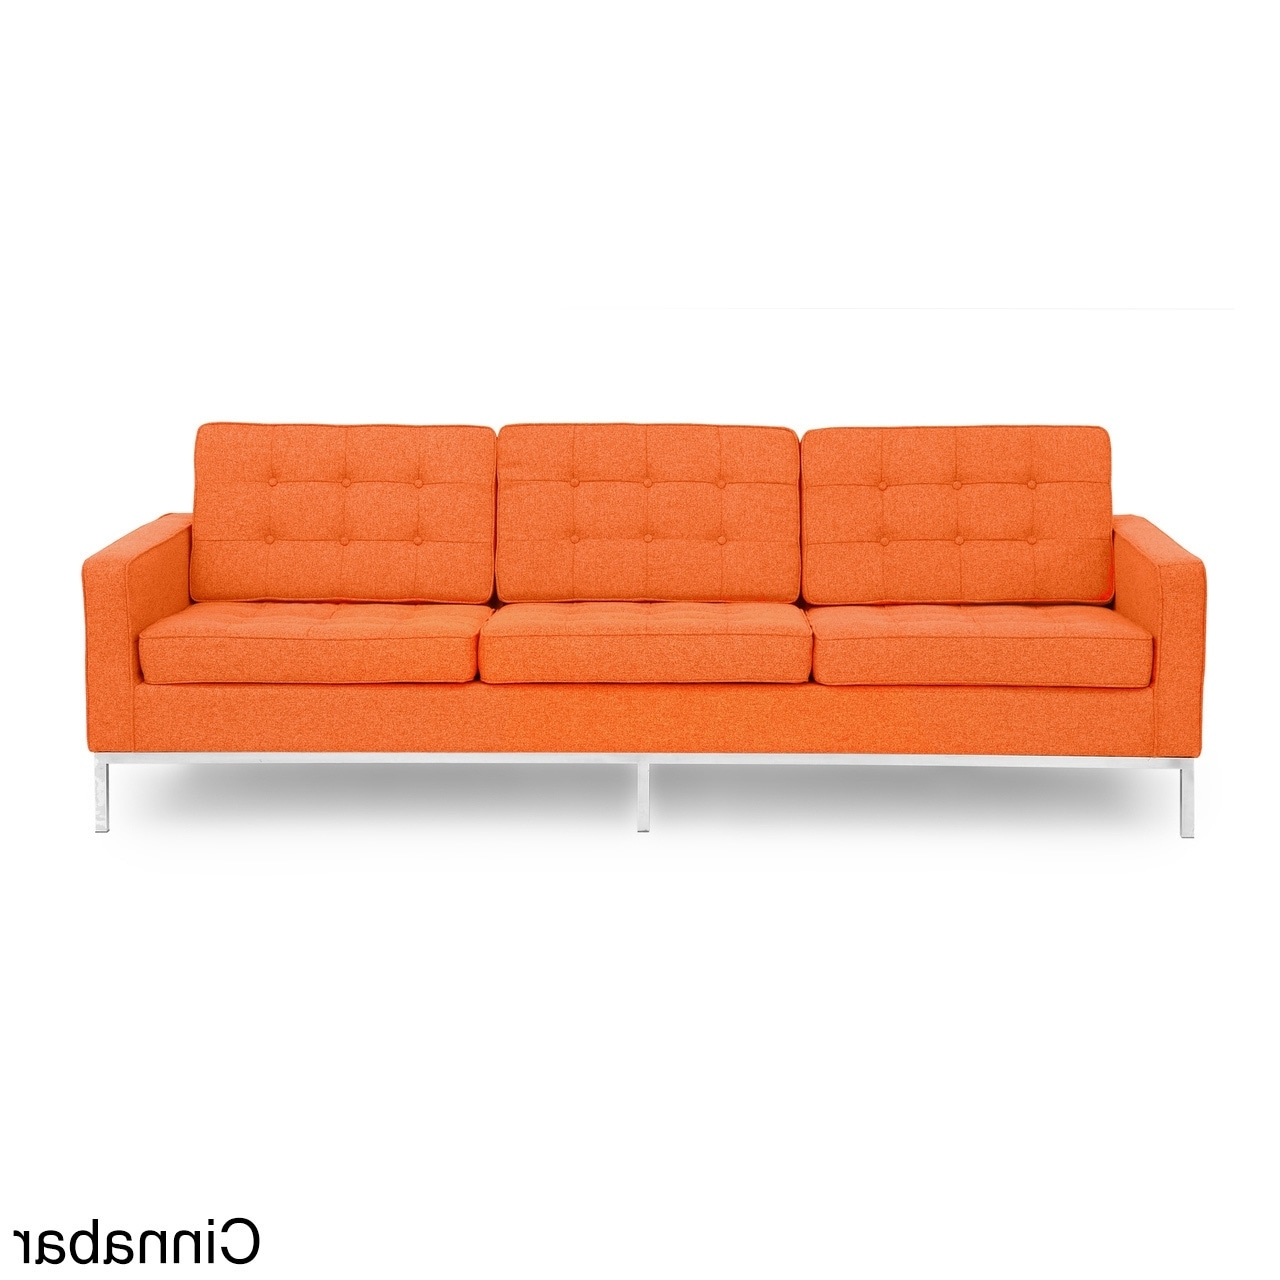 Kardiel Florence Knoll Style Sofa 3 Seat, Premium Fabric Within Well Known Florence Knoll Style Sofas (Gallery 14 of 15)